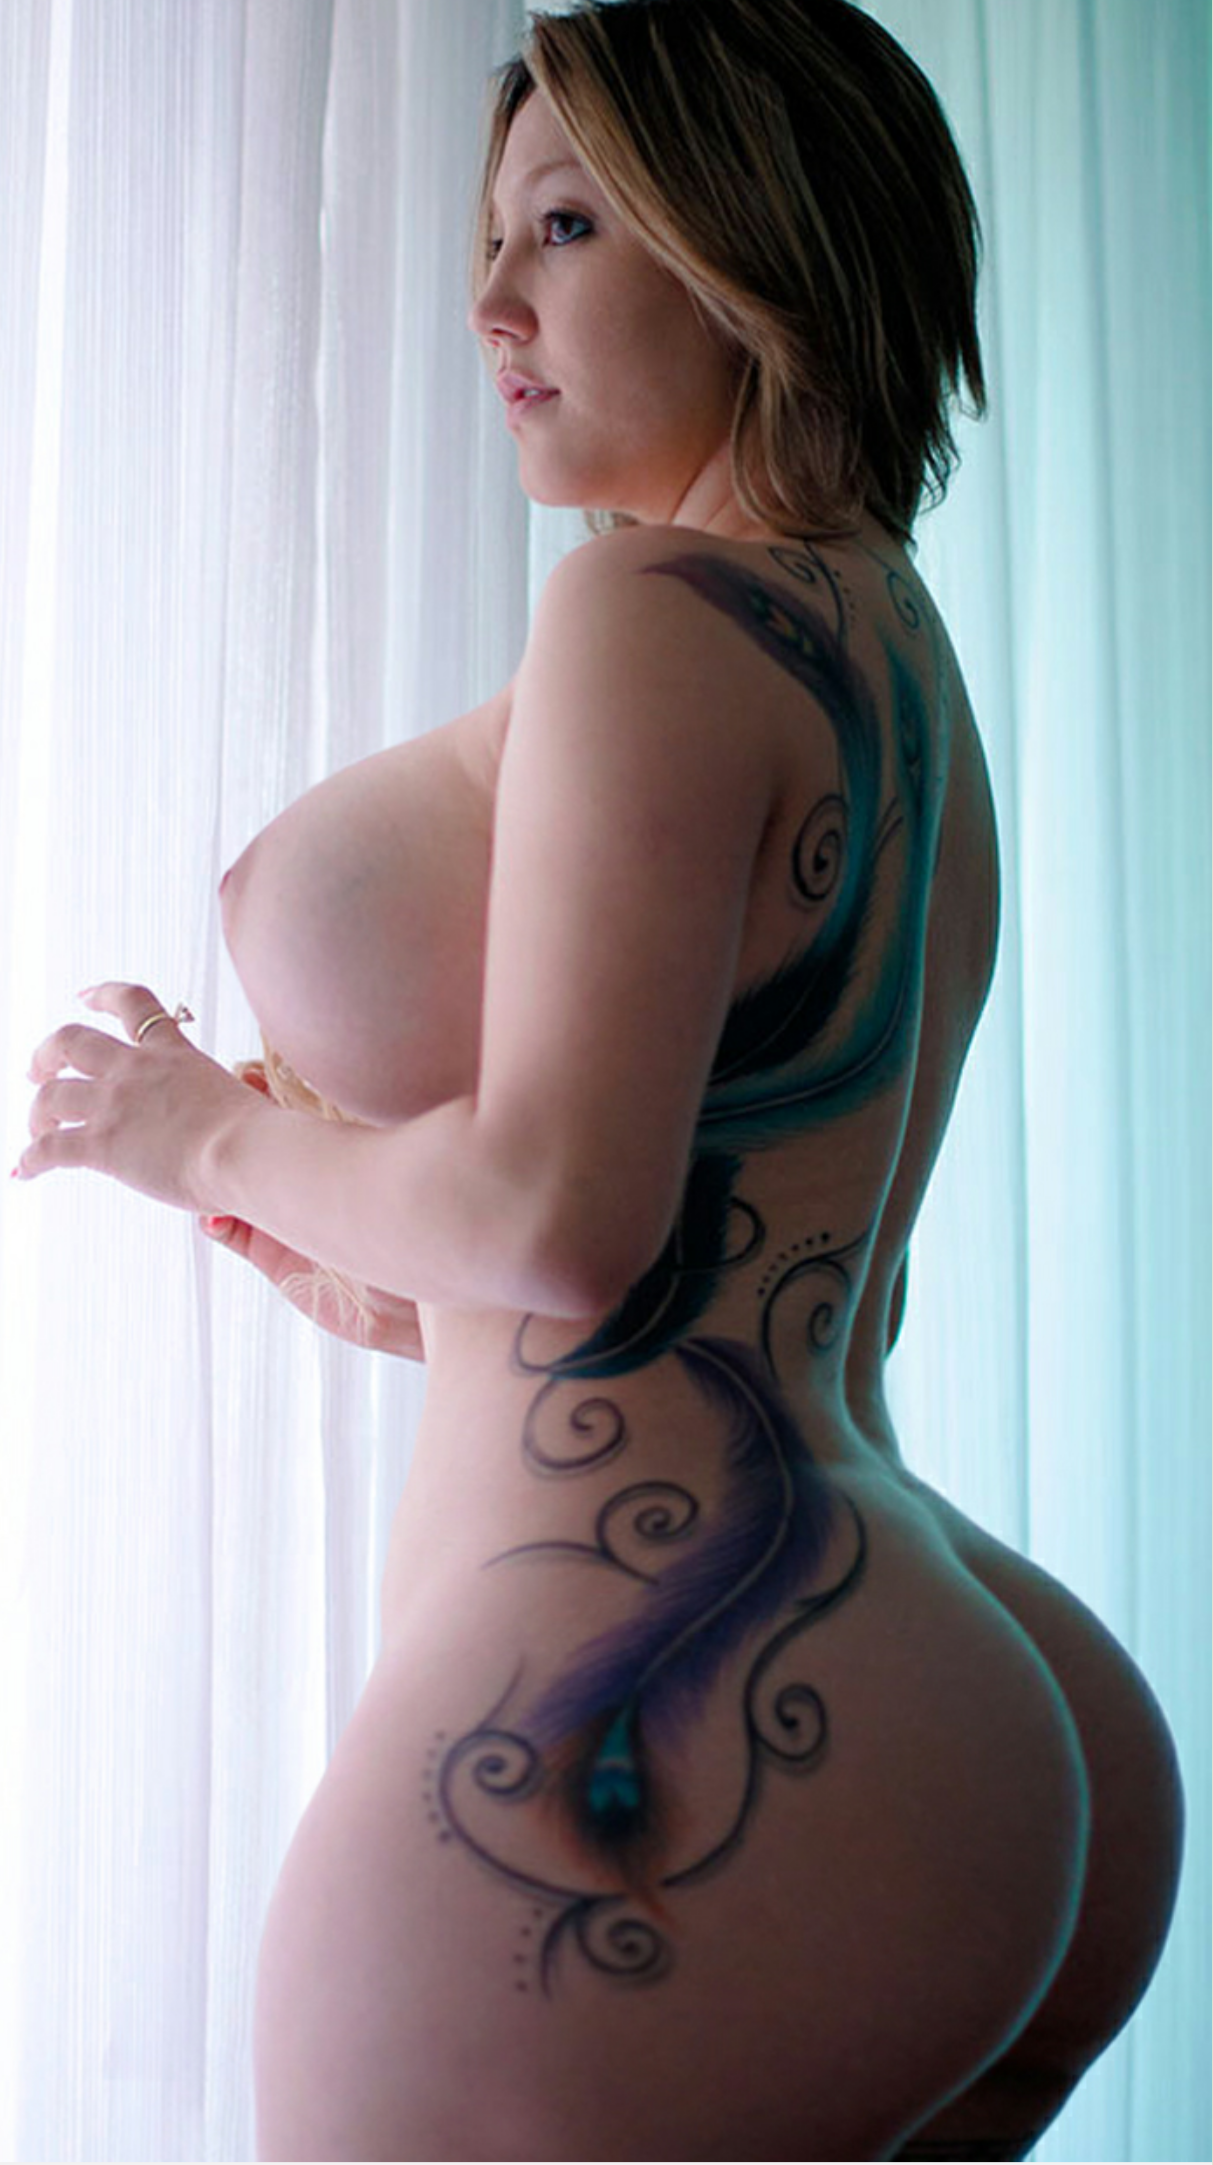 Nude Sexy Women With Tattoos On Big Boobs